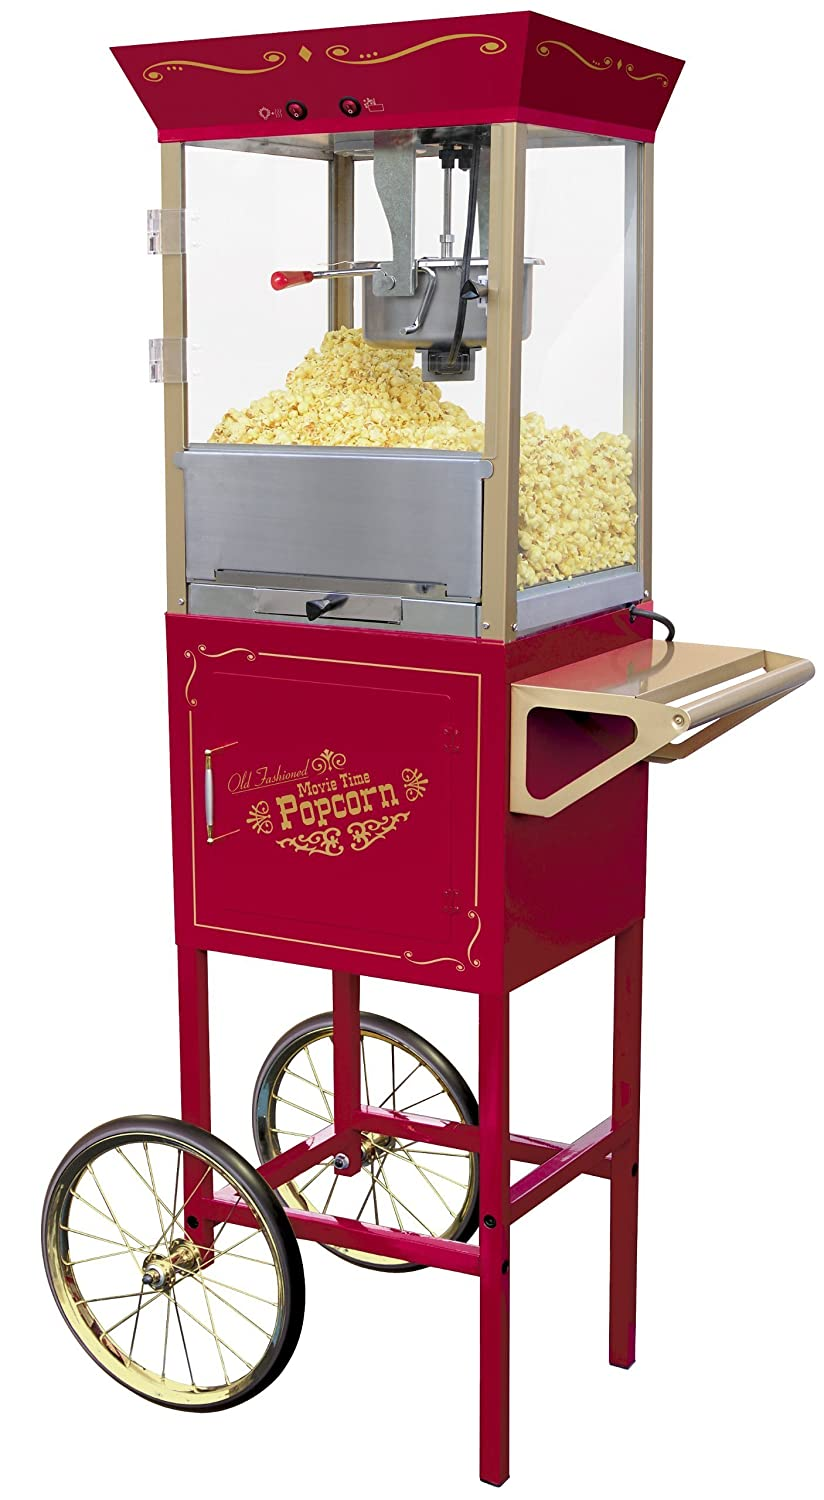 Nostalgia Electrics Old Fashioned Large Popcorn Cart palomitas de maiz poppers - Palomitero (120 V, 30,8 kg): Amazon.es: Hogar